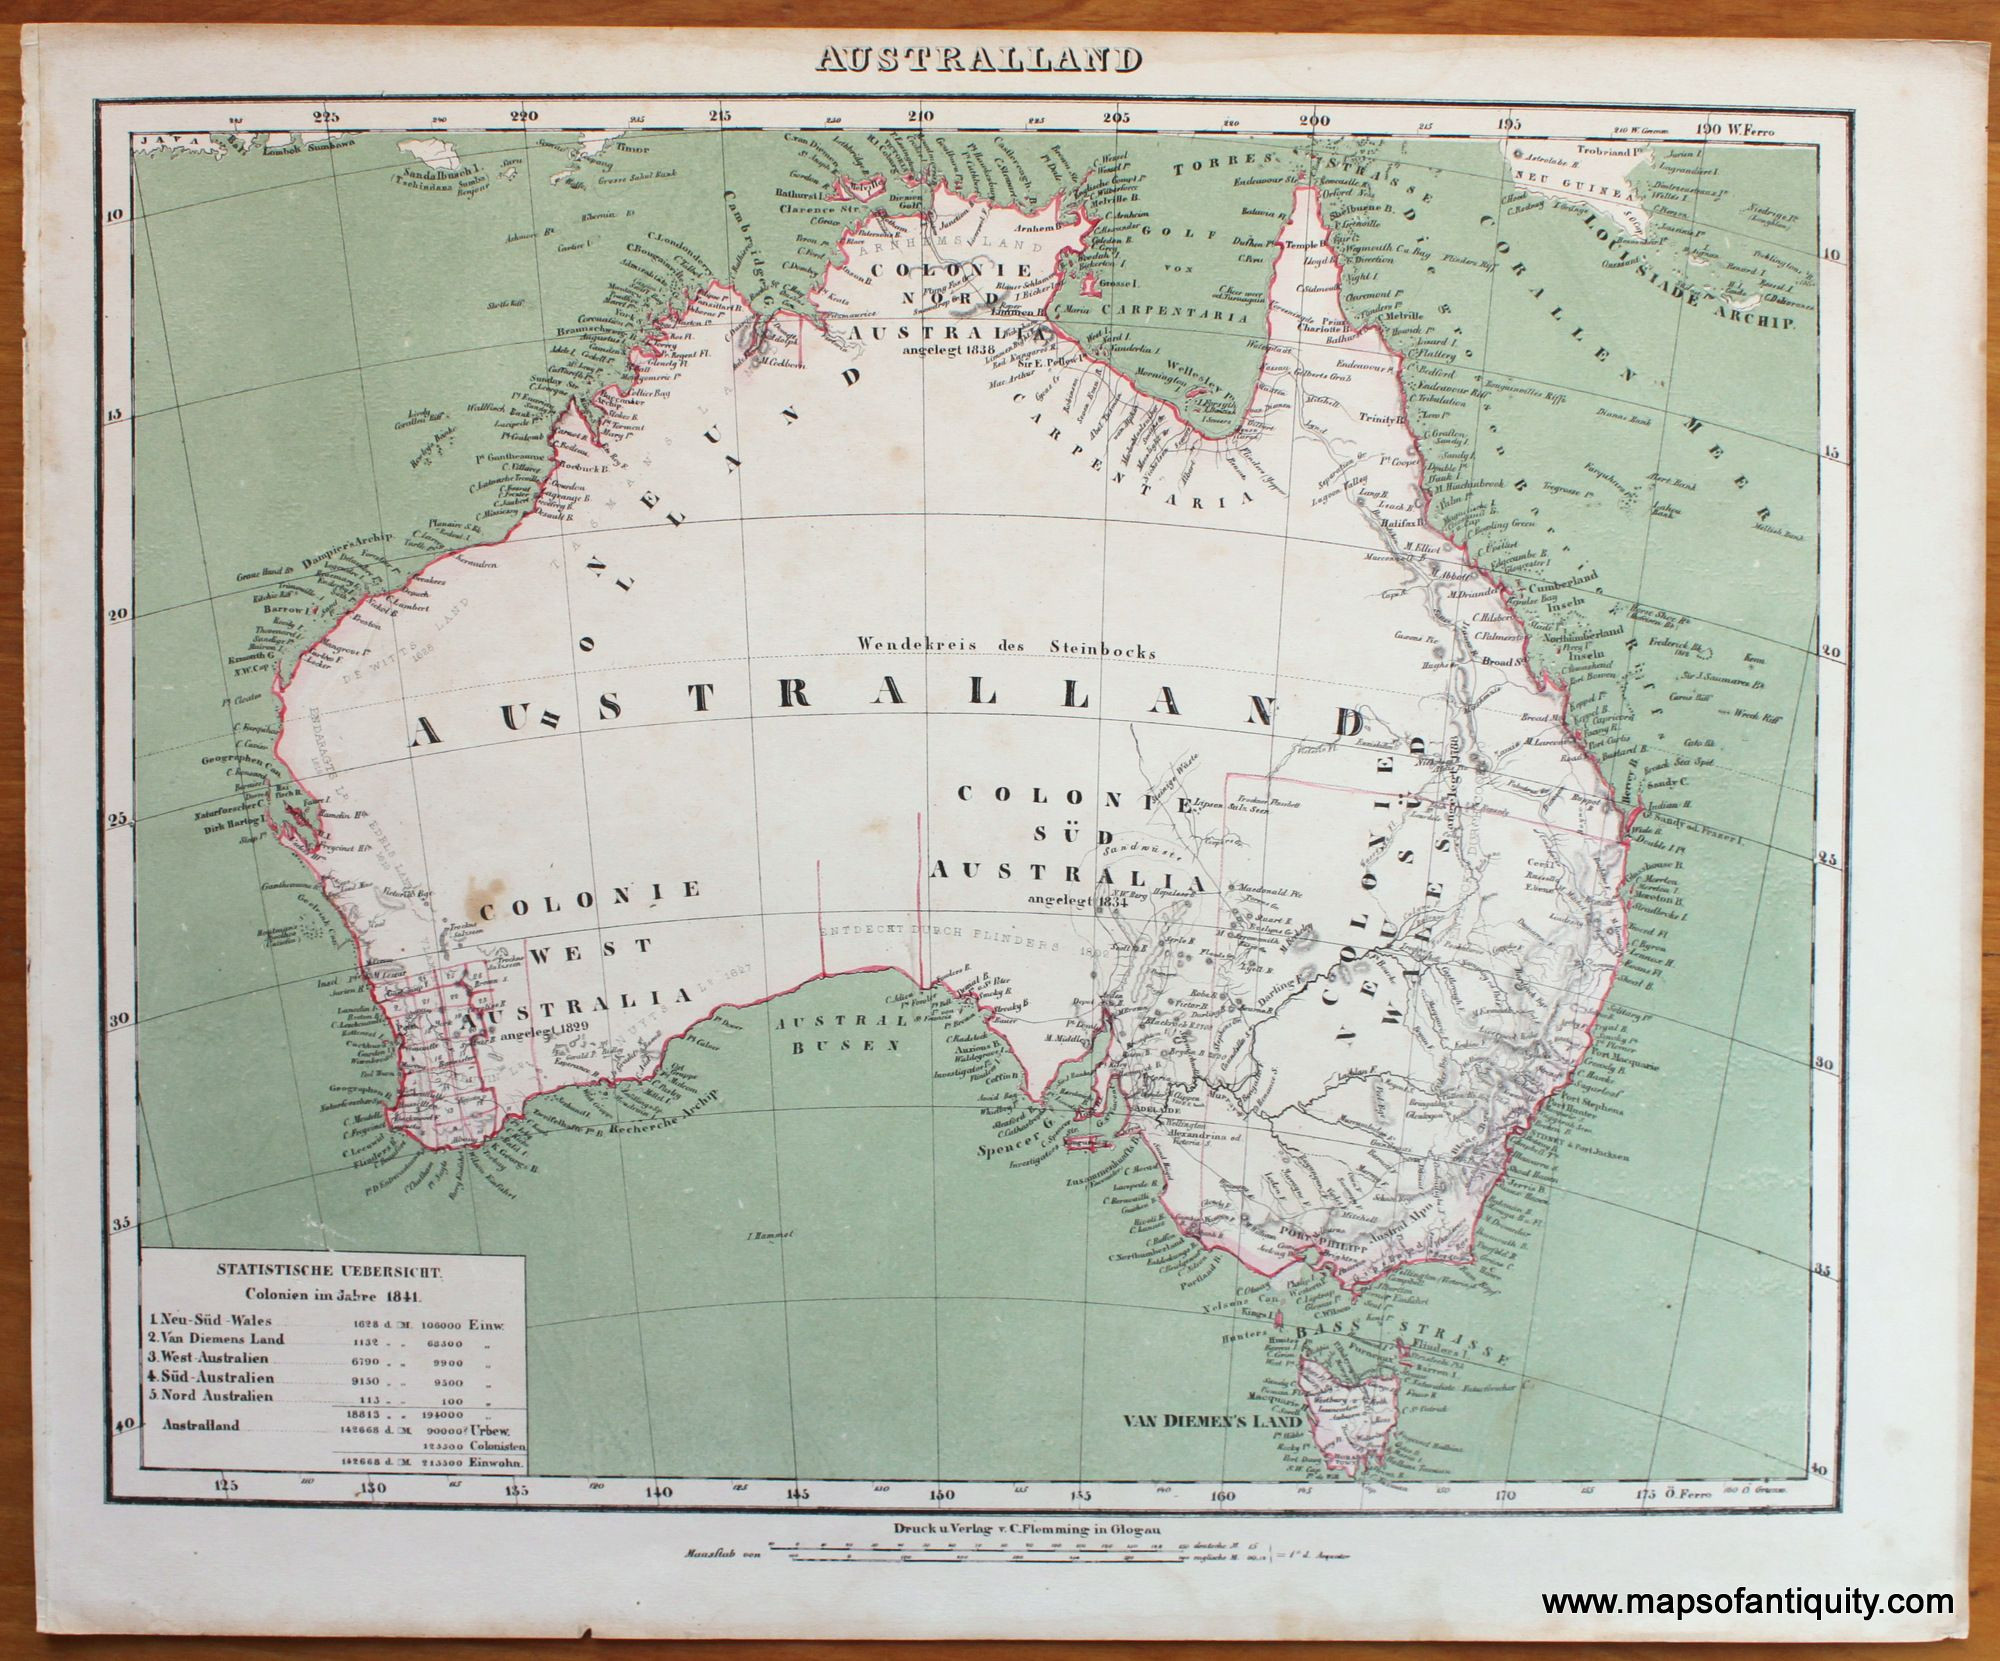 Printable Map Tasmania Elegant Australland Antique Maps And Charts – Original Vintage Rare